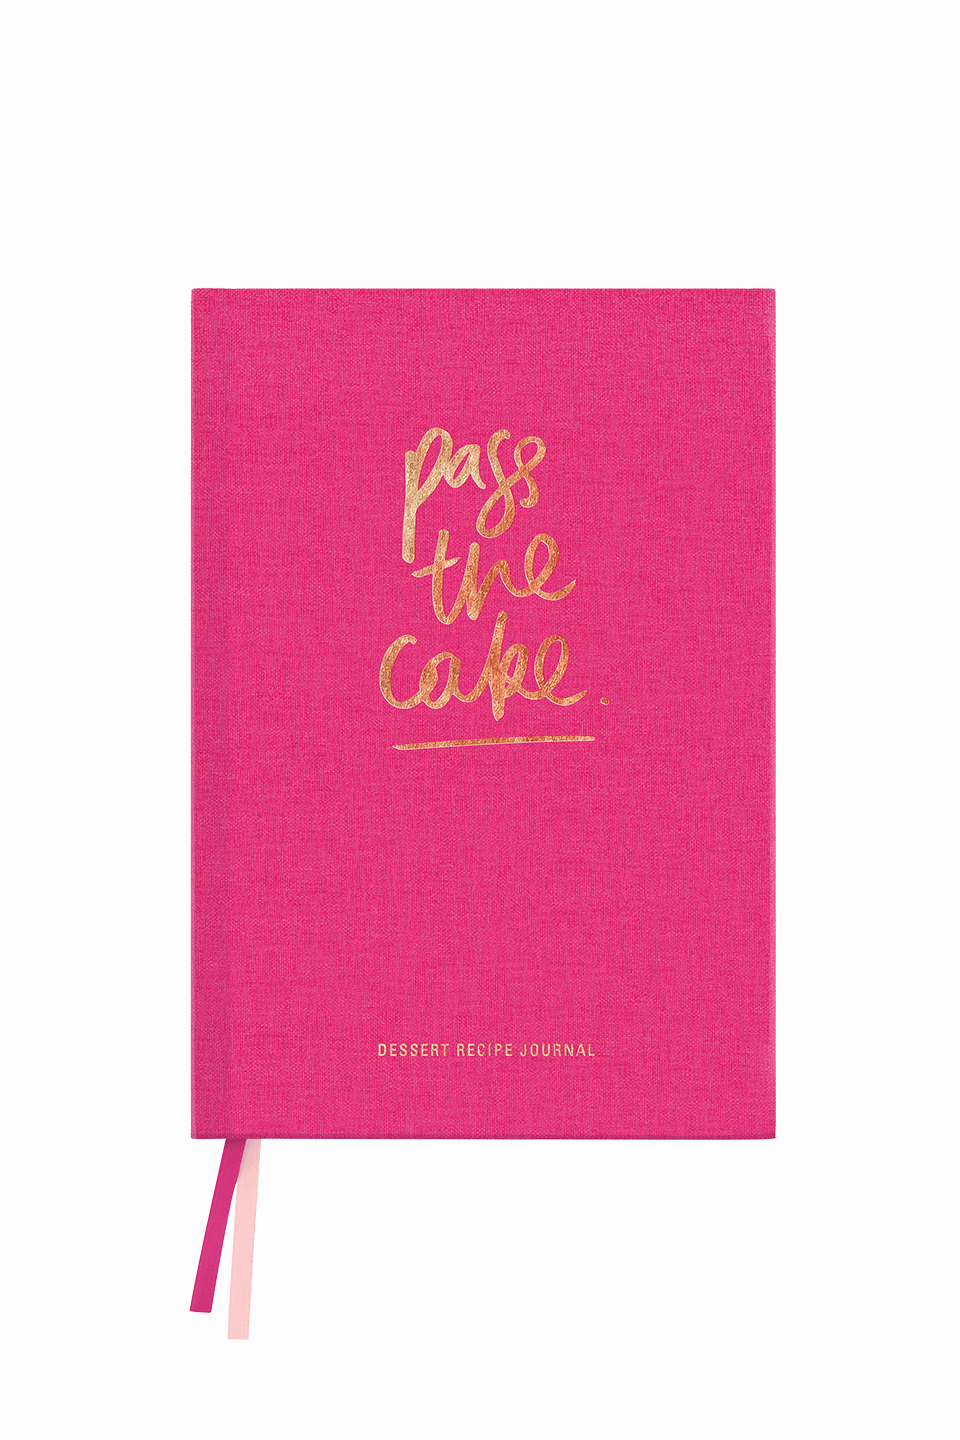 Pass The Cake Dessert Journal - nectar & stone x BC collaboration